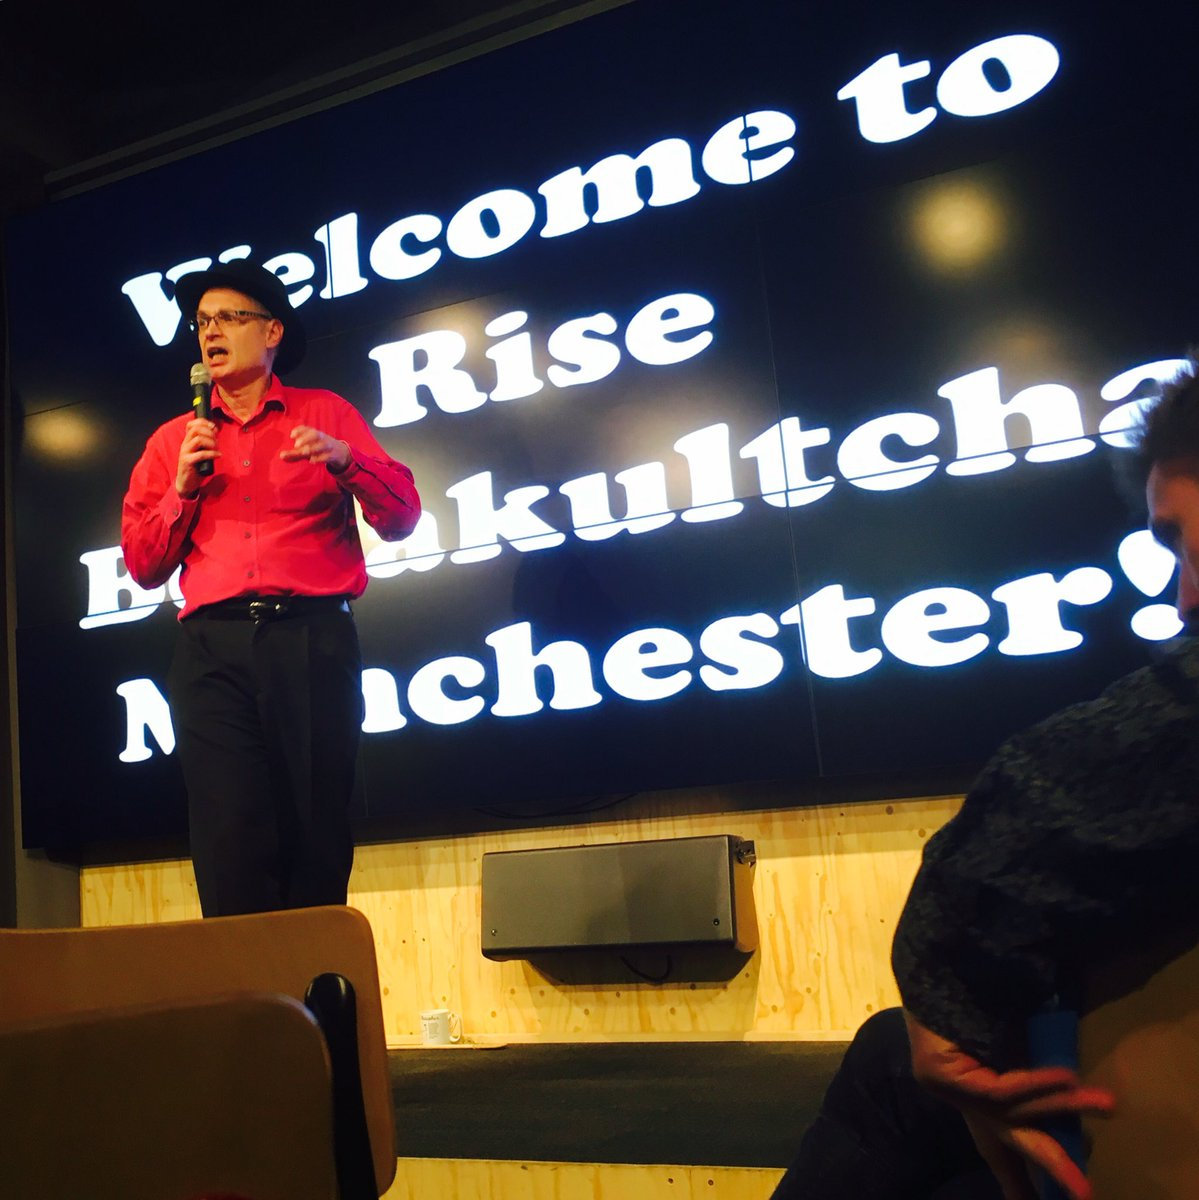 @ivortymchak gets #Bettakultcha off to a cracking start @McrThinkRise https://t.co/3upNYGtpNH